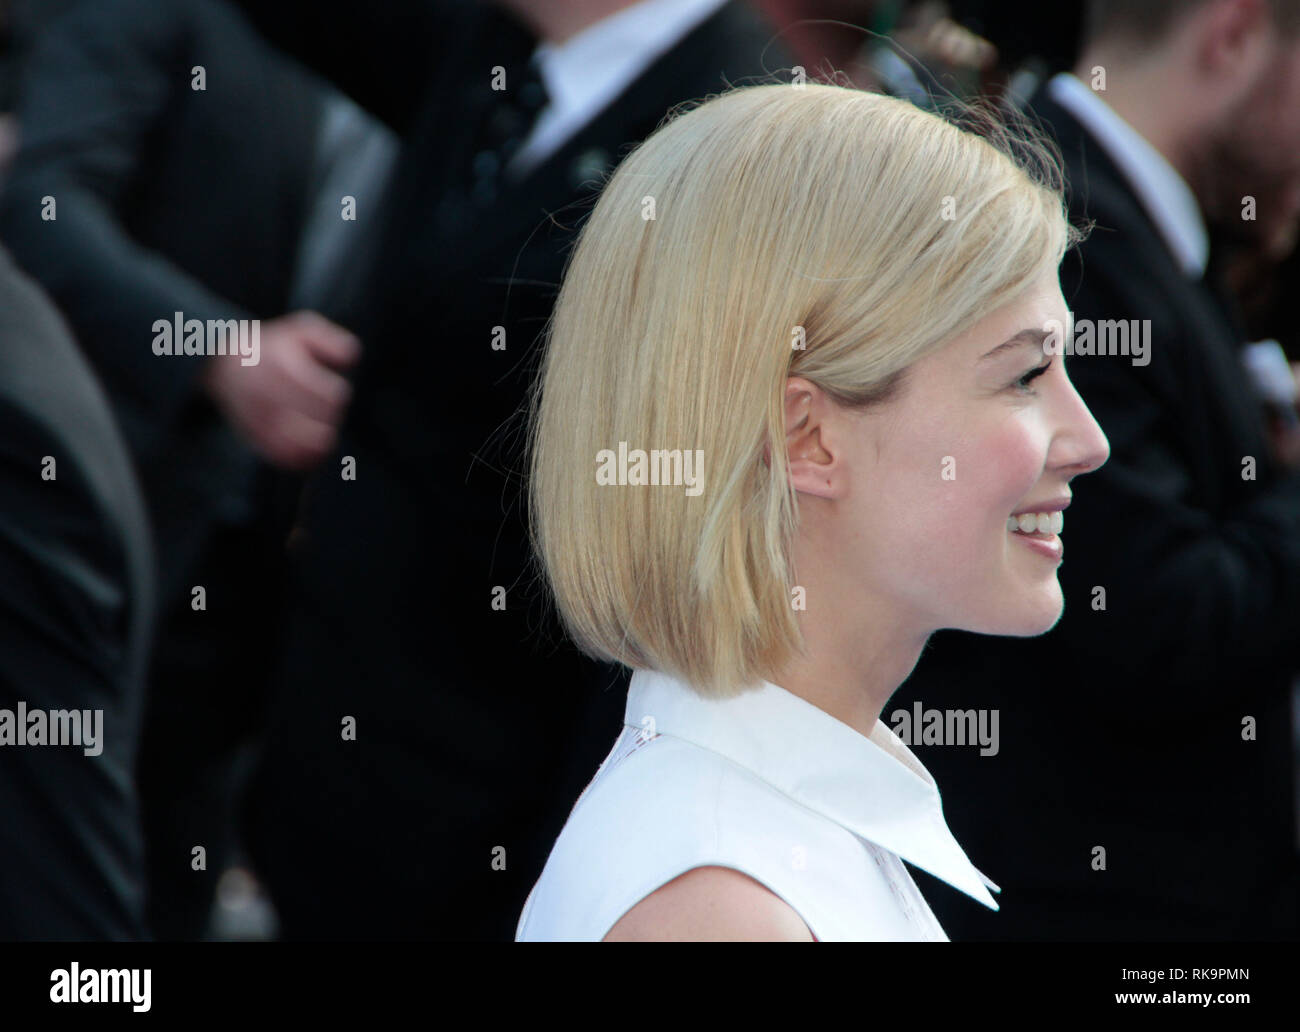 Rosamund Pike arrives at the World Premiere of 'The World's End' at the Empire, Leicester Square, London - Stock Image